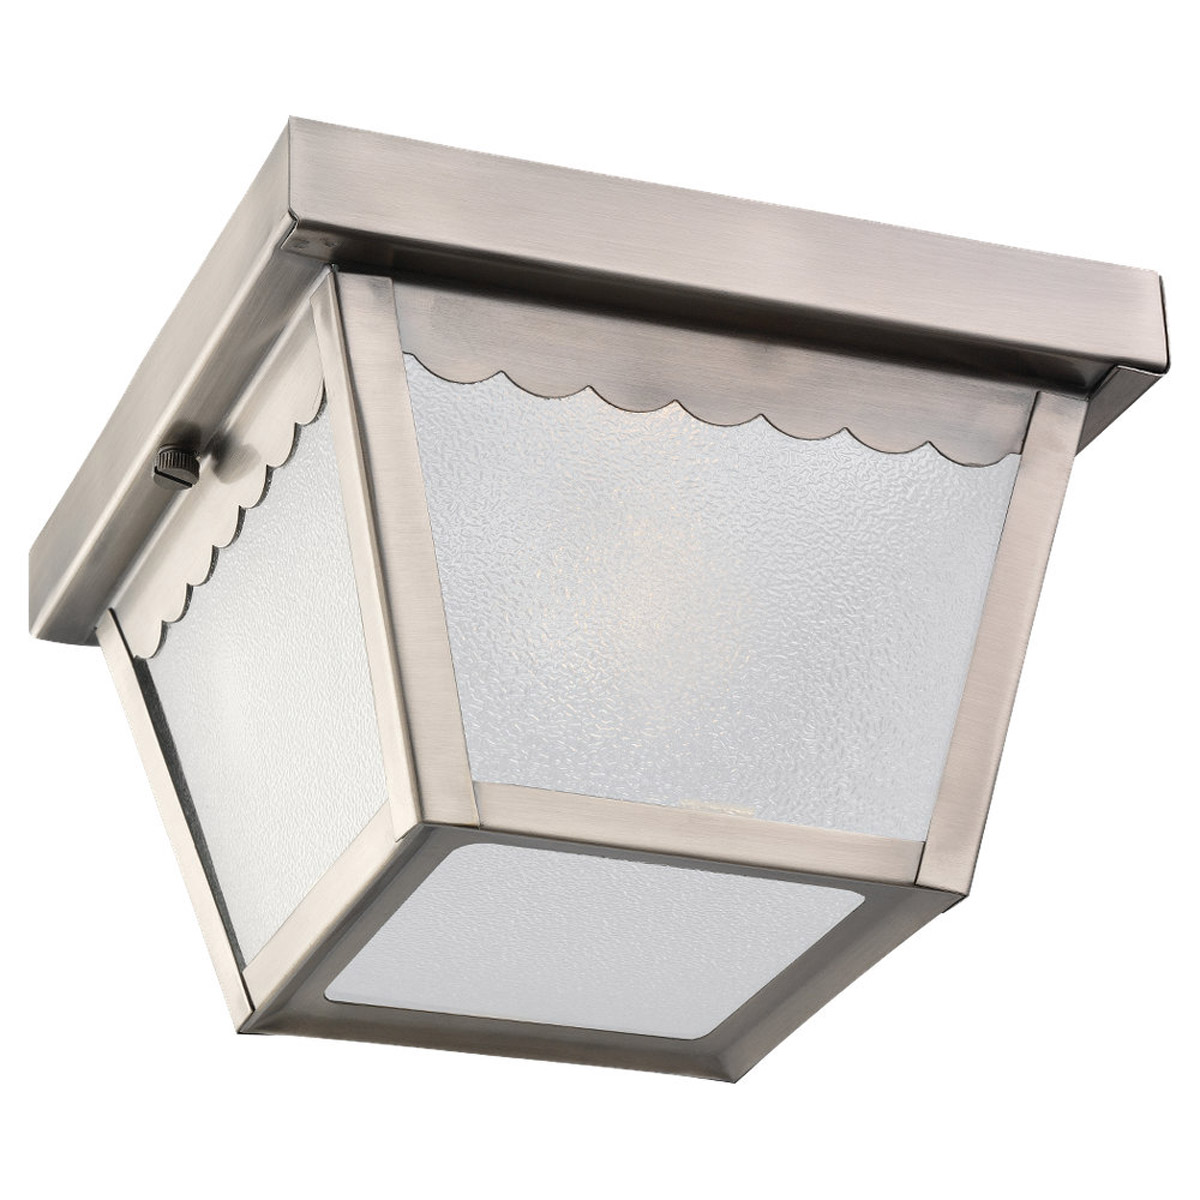 Sea Gull Lighting Signature 1 Light Outdoor Ceiling Fixture in Antique Brushed Nickel 75467-965